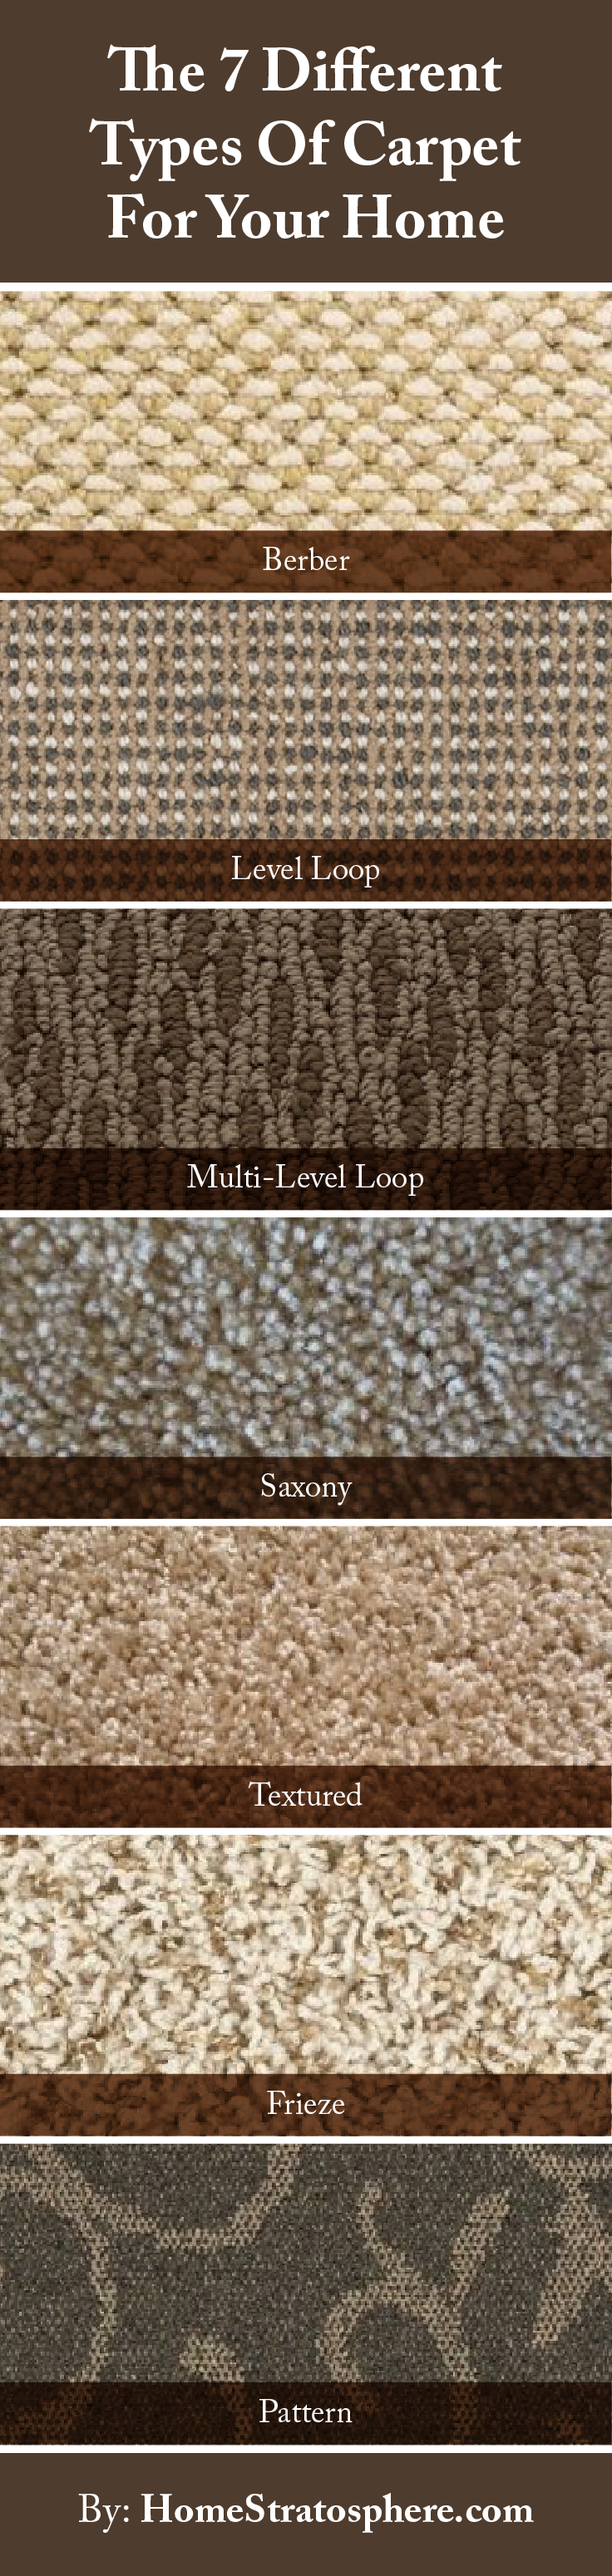 The 7 Different Types Of Carpet For Your Home Types Of Carpet